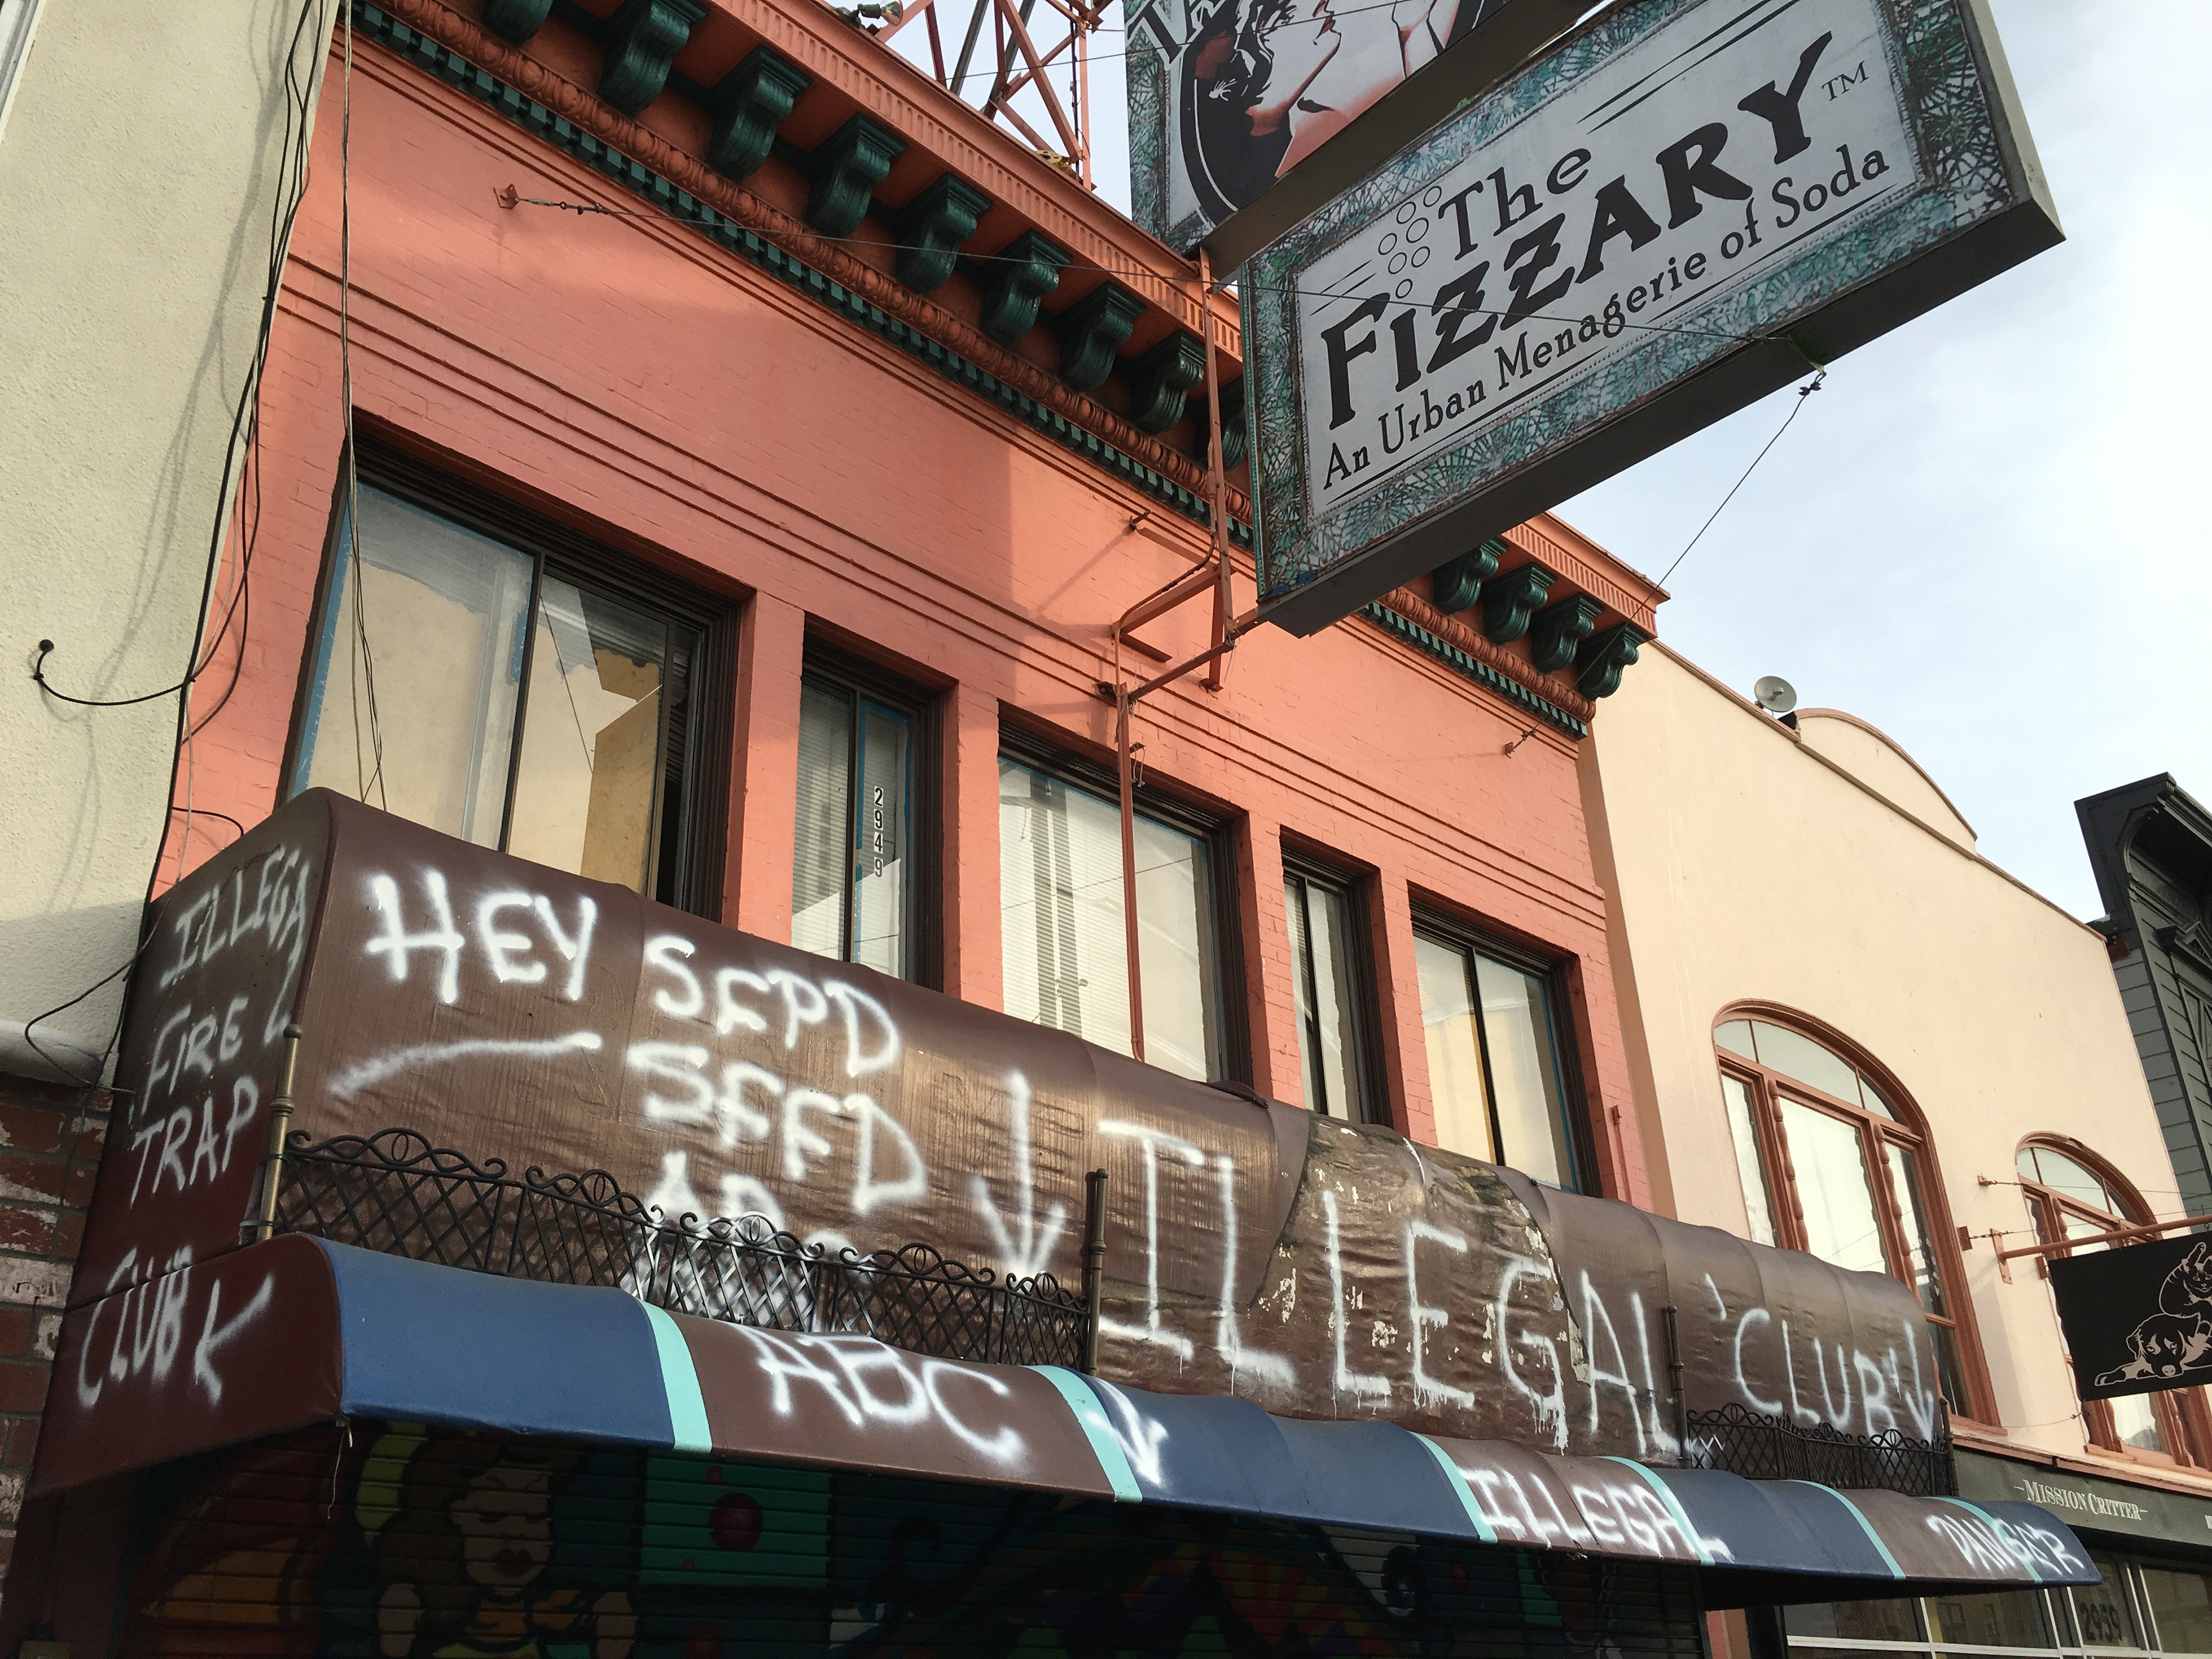 The former Fizzary, now the site of an illegal gambling den. Photo: Joe Rivano Barros / Mission Local.